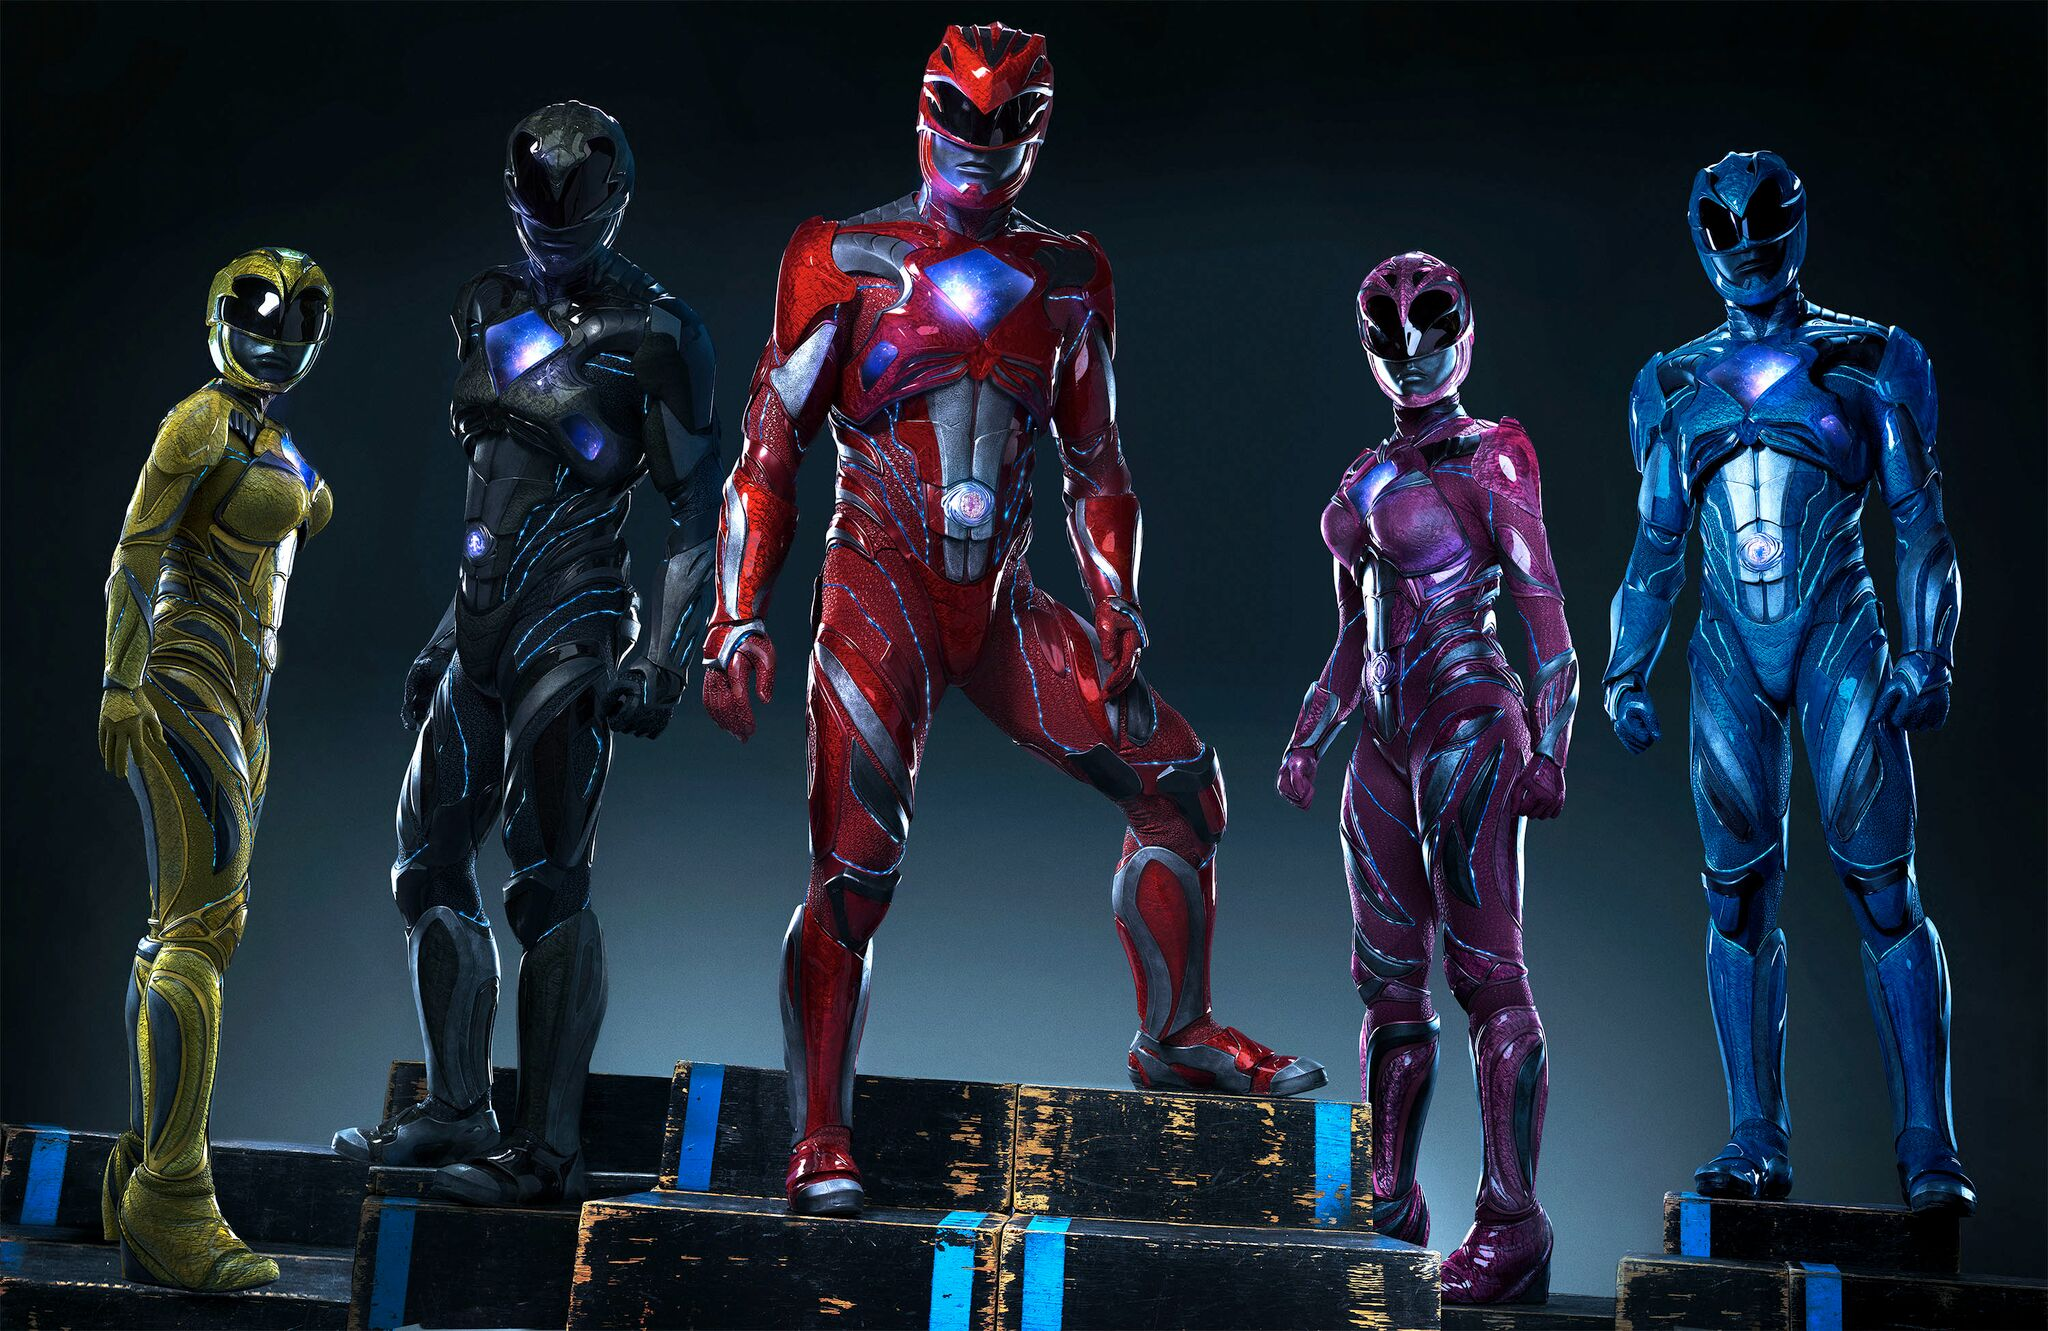 Power Rangers Wallpaper For Bedroom This Is What The Power Rangers Look Like Today The Power Rangers